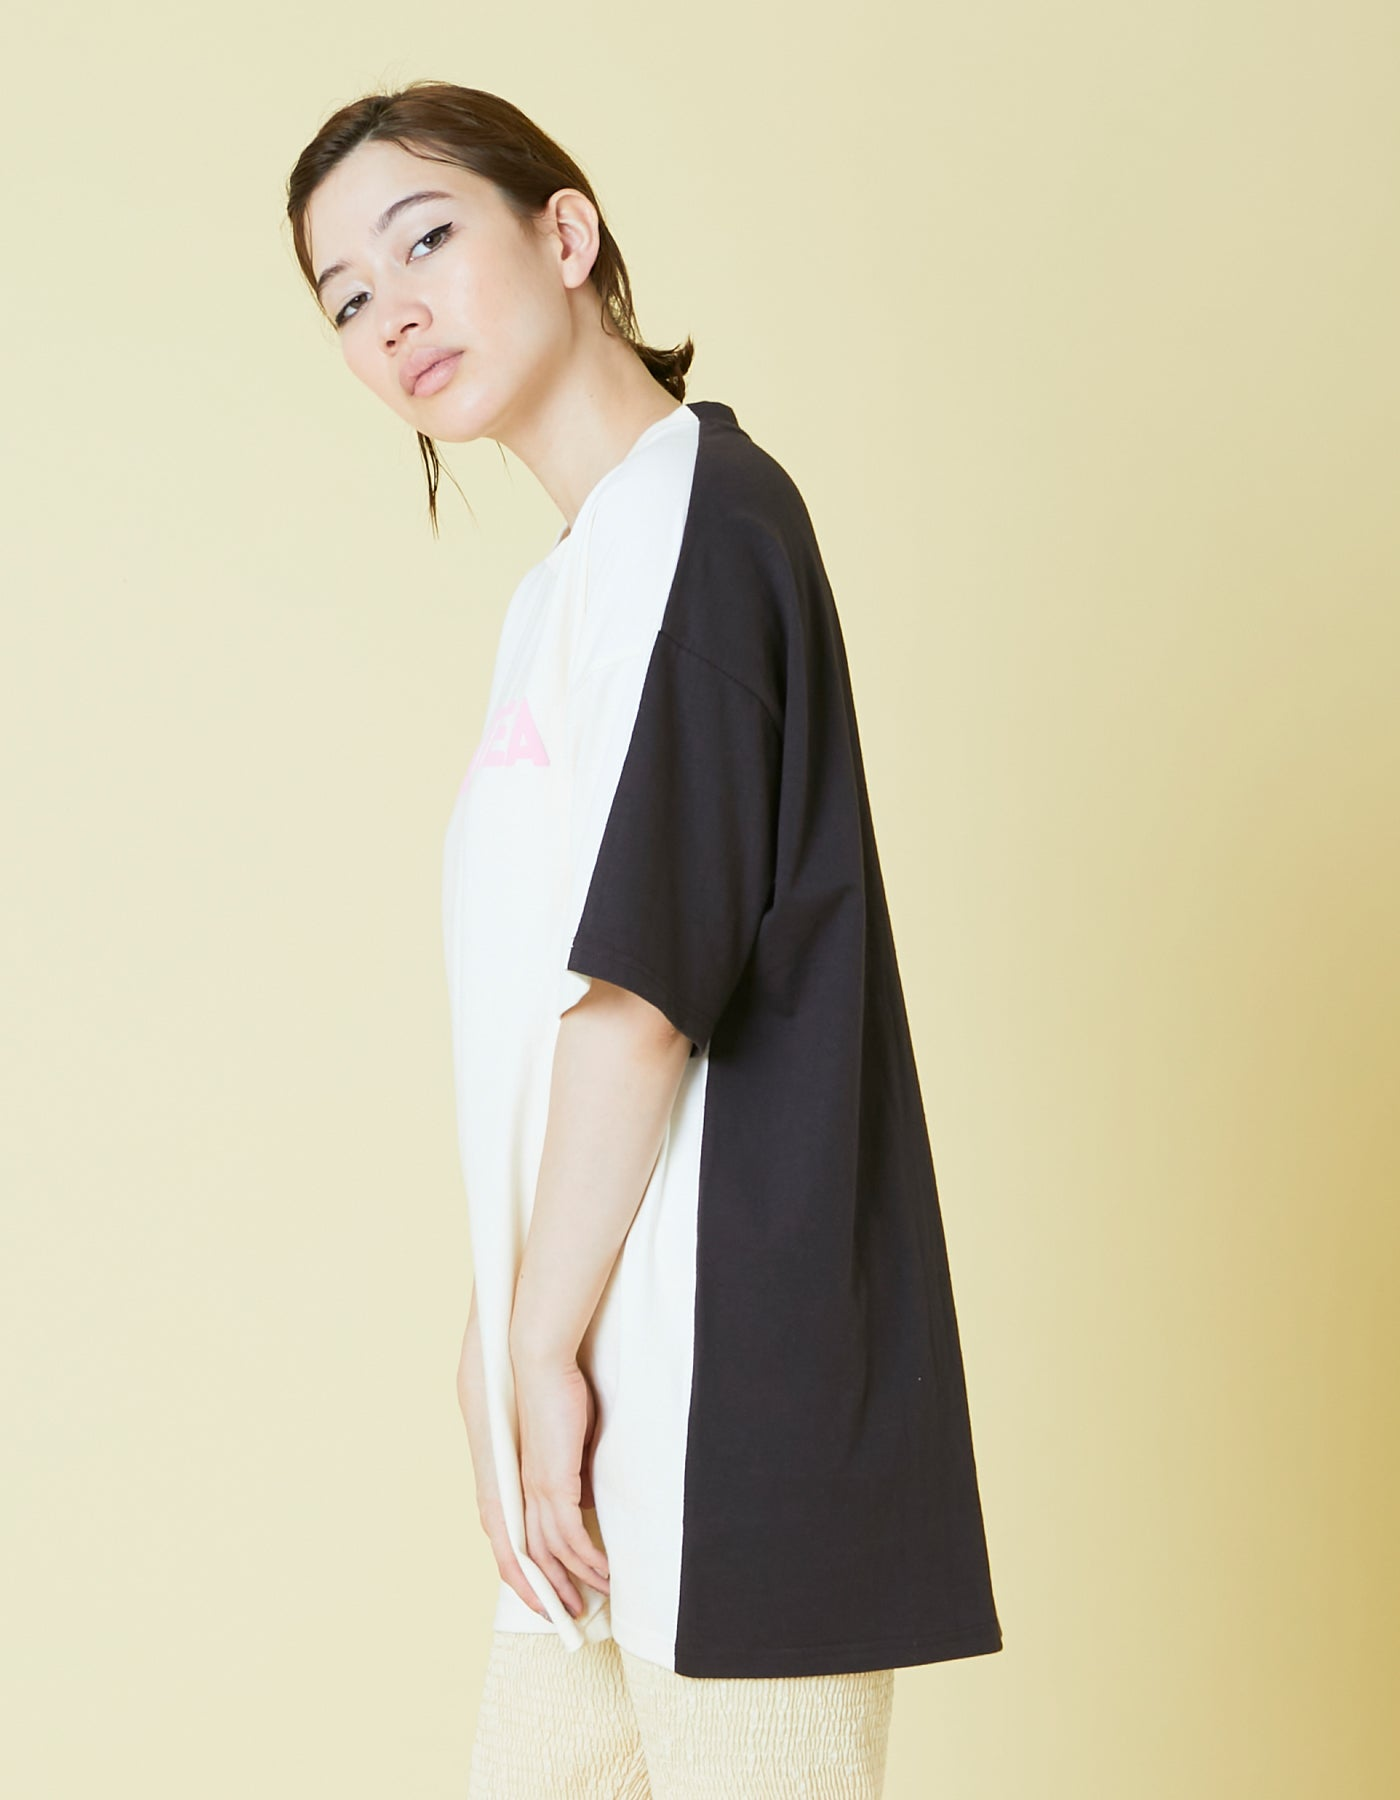 Milk tea tee / WHITE×BLACK